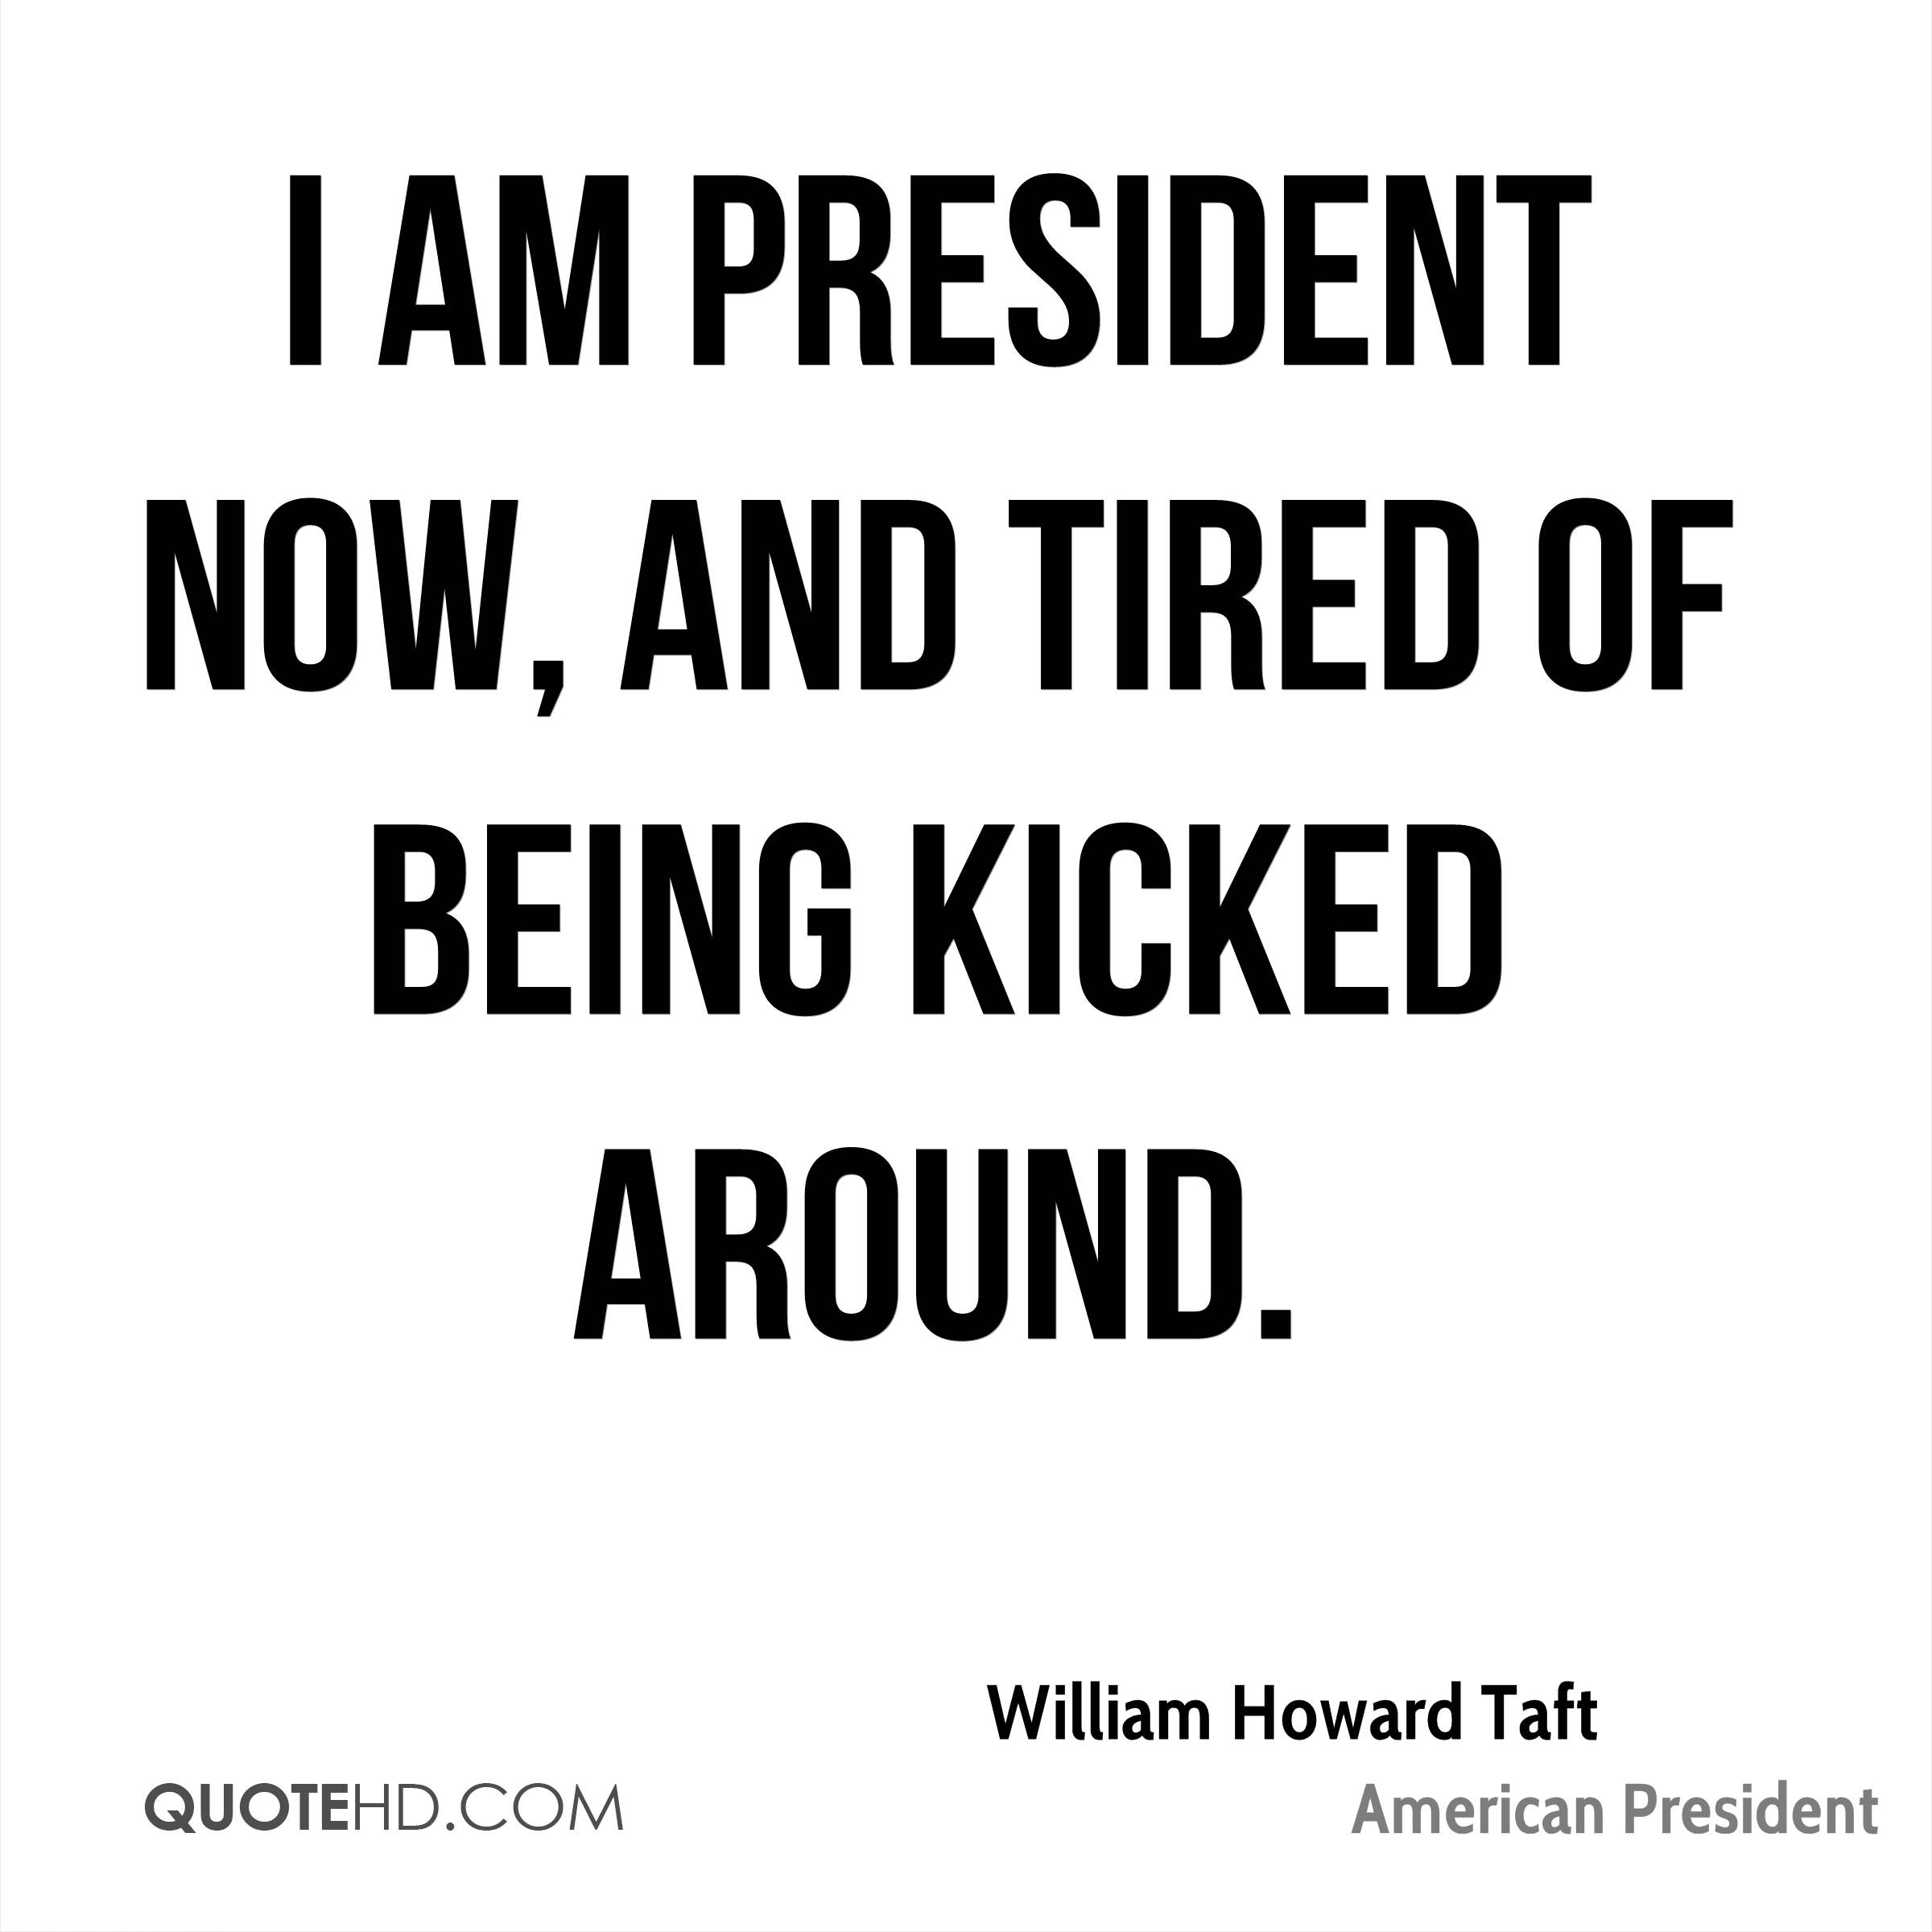 I am president now, and tired of being kicked around.